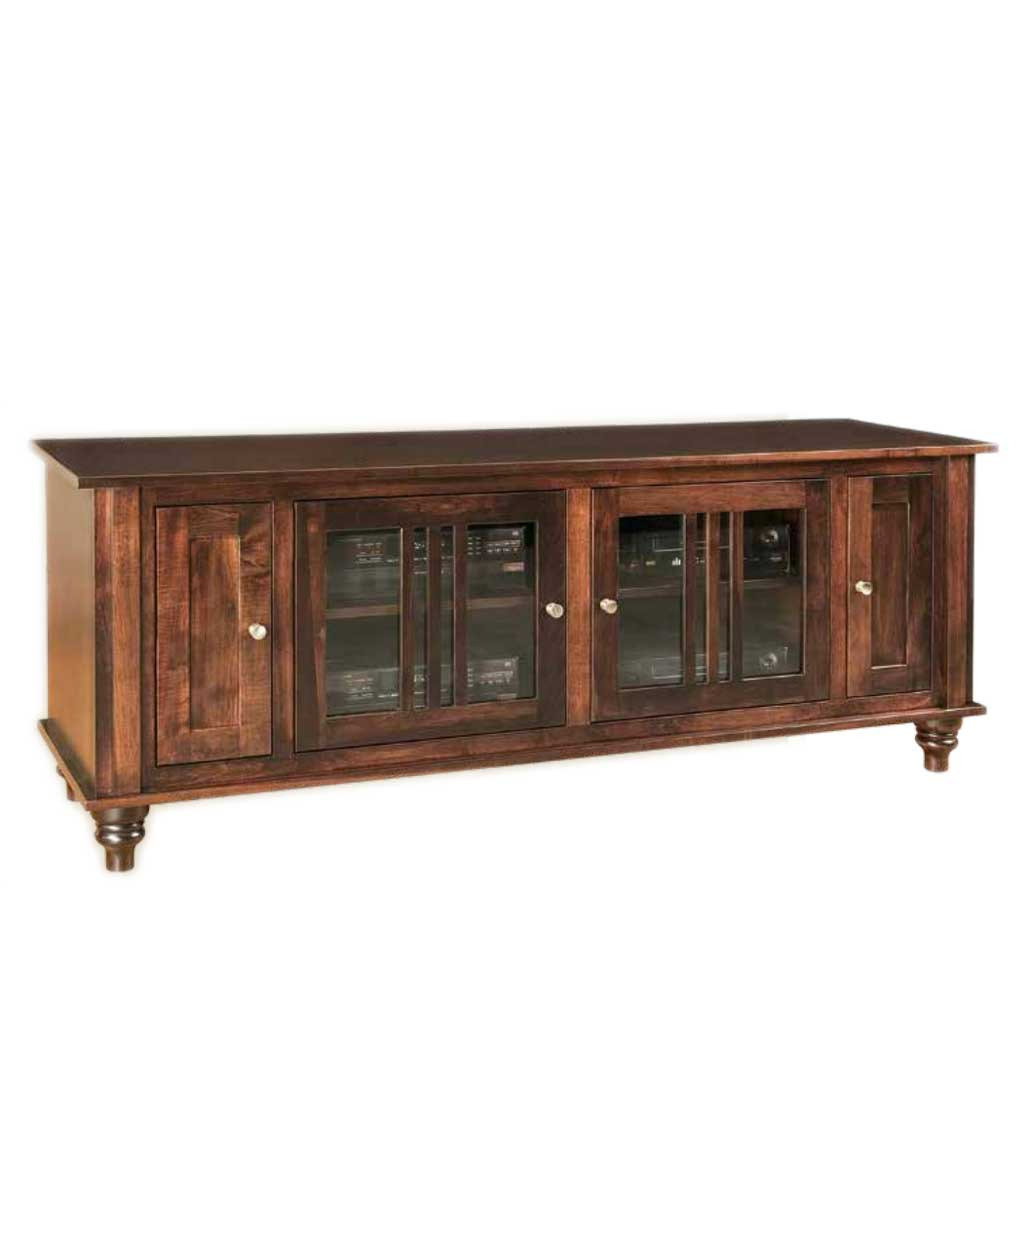 Harvest Tv Stand 65 Inch Wide Amish Direct Furniture